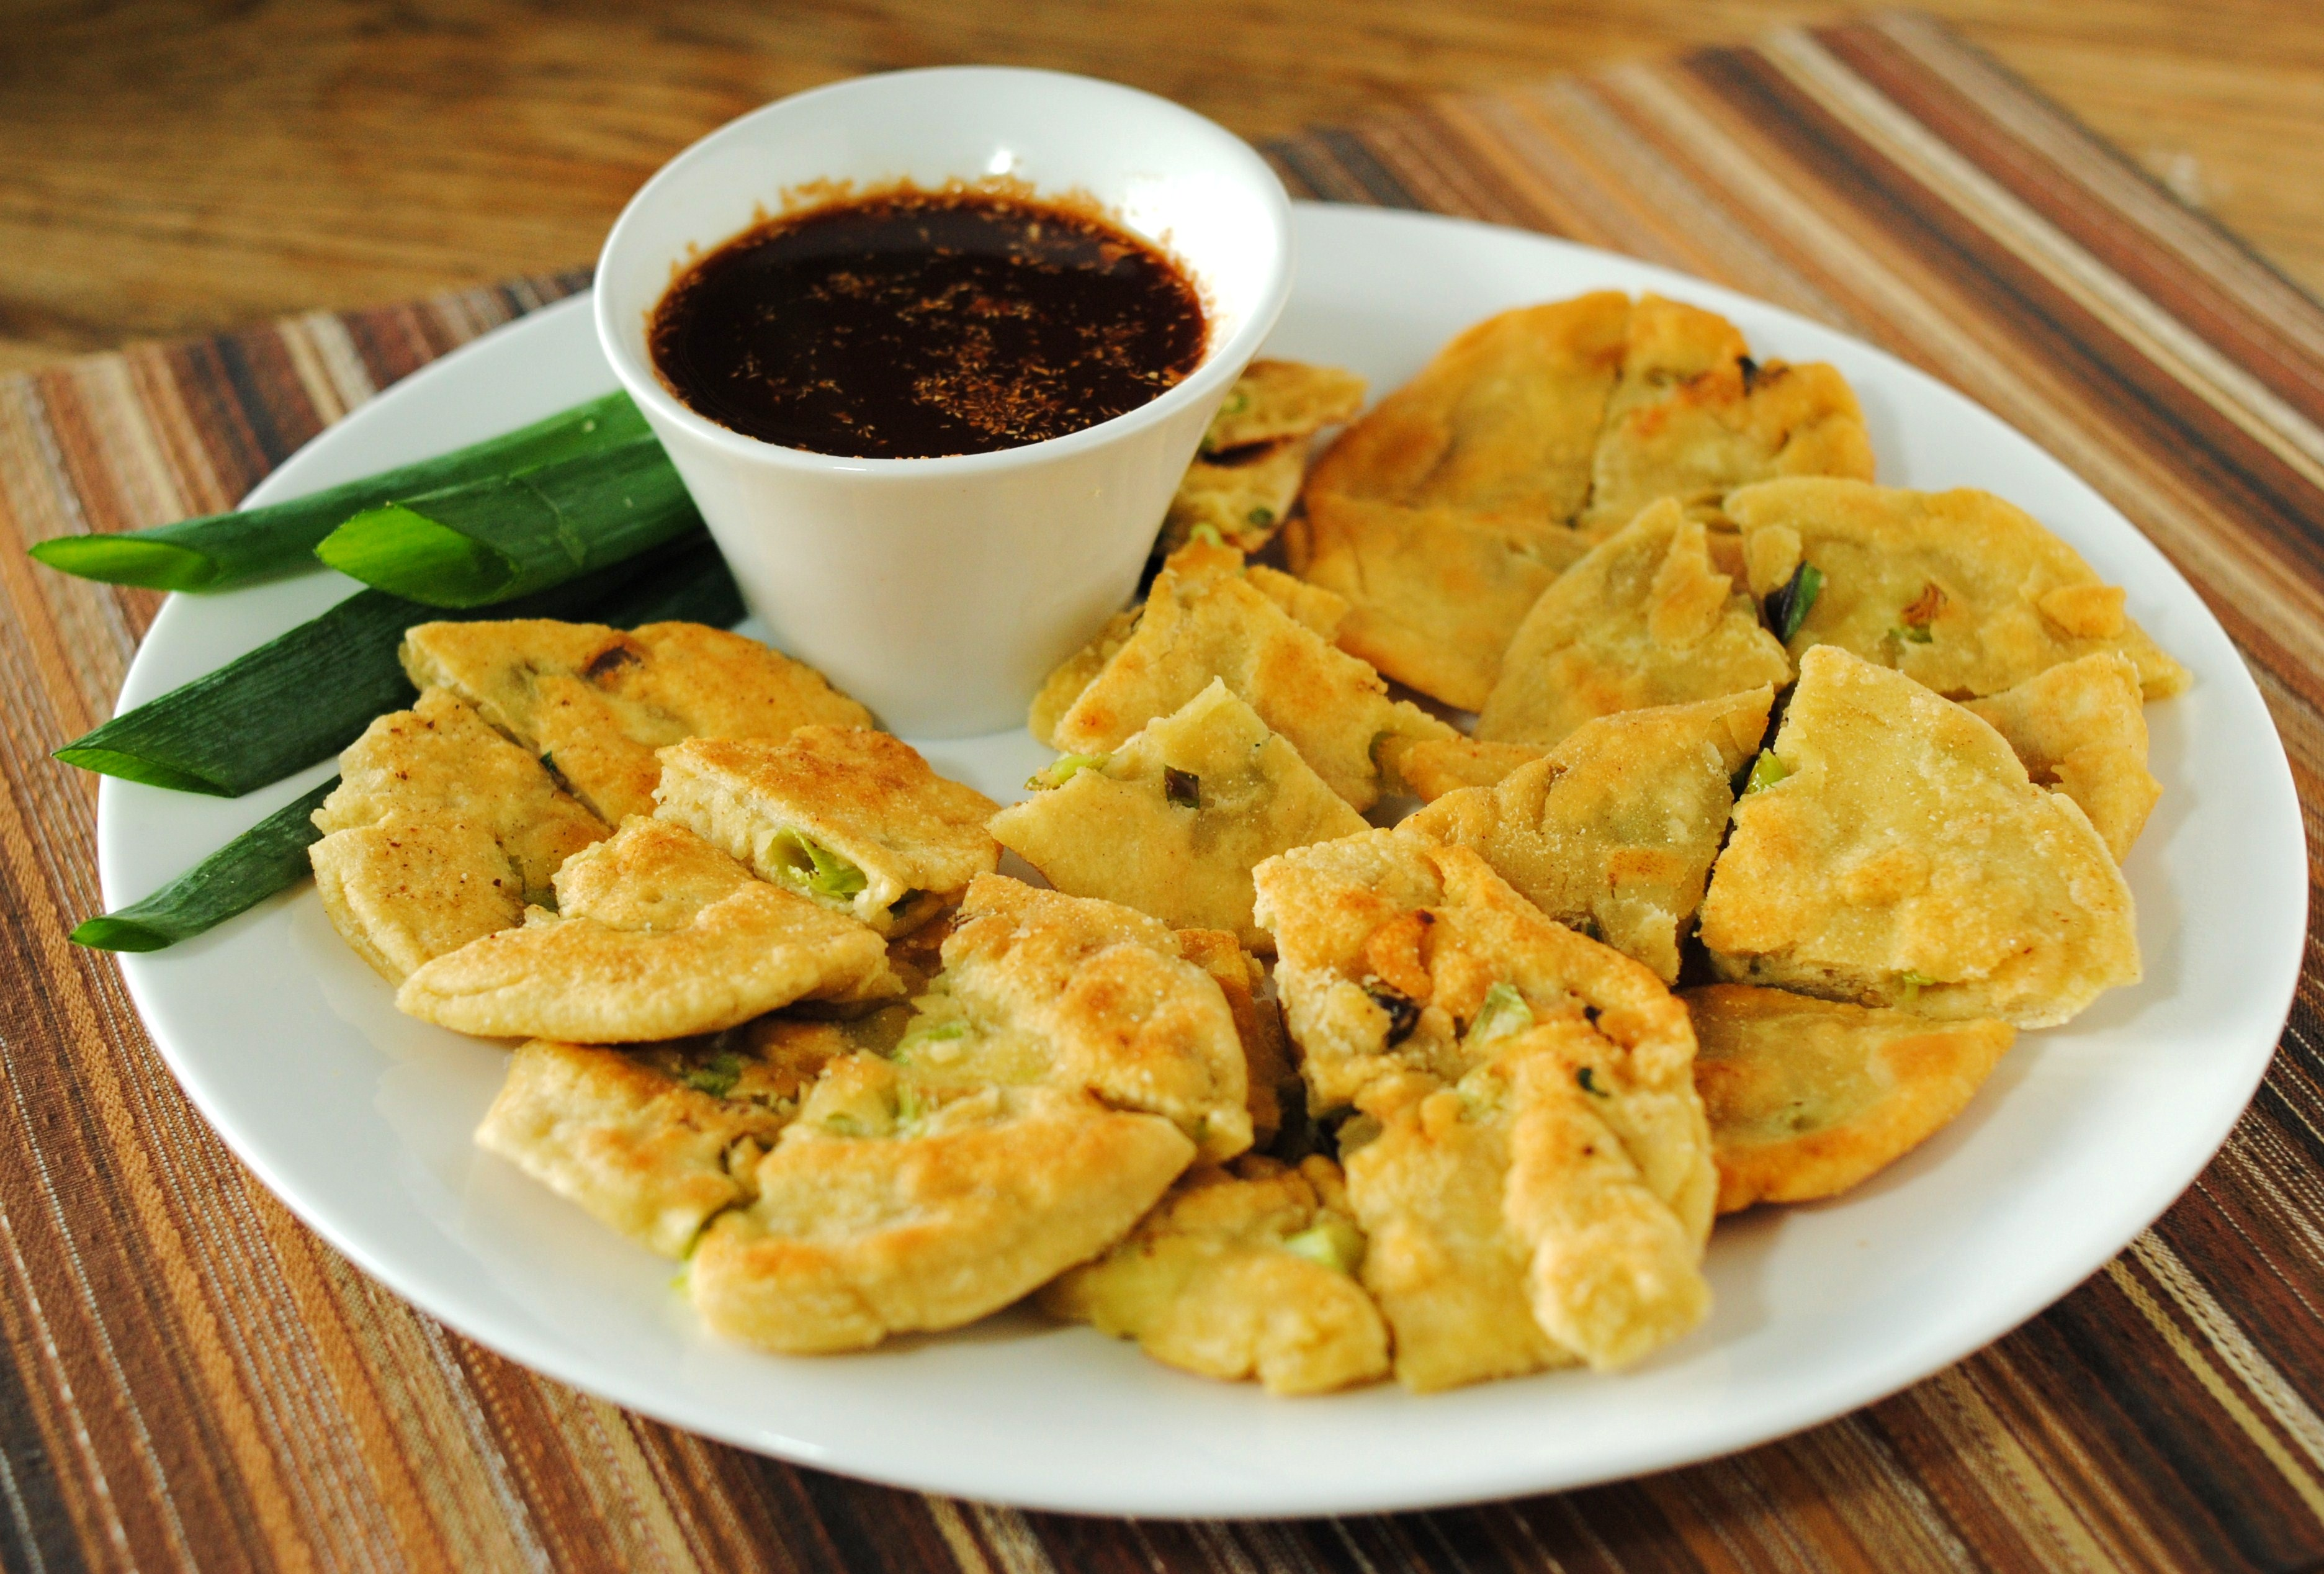 Chinese low amine recipes low amine chinese scallion pancakes with soy sauce dipping sauce forumfinder Image collections